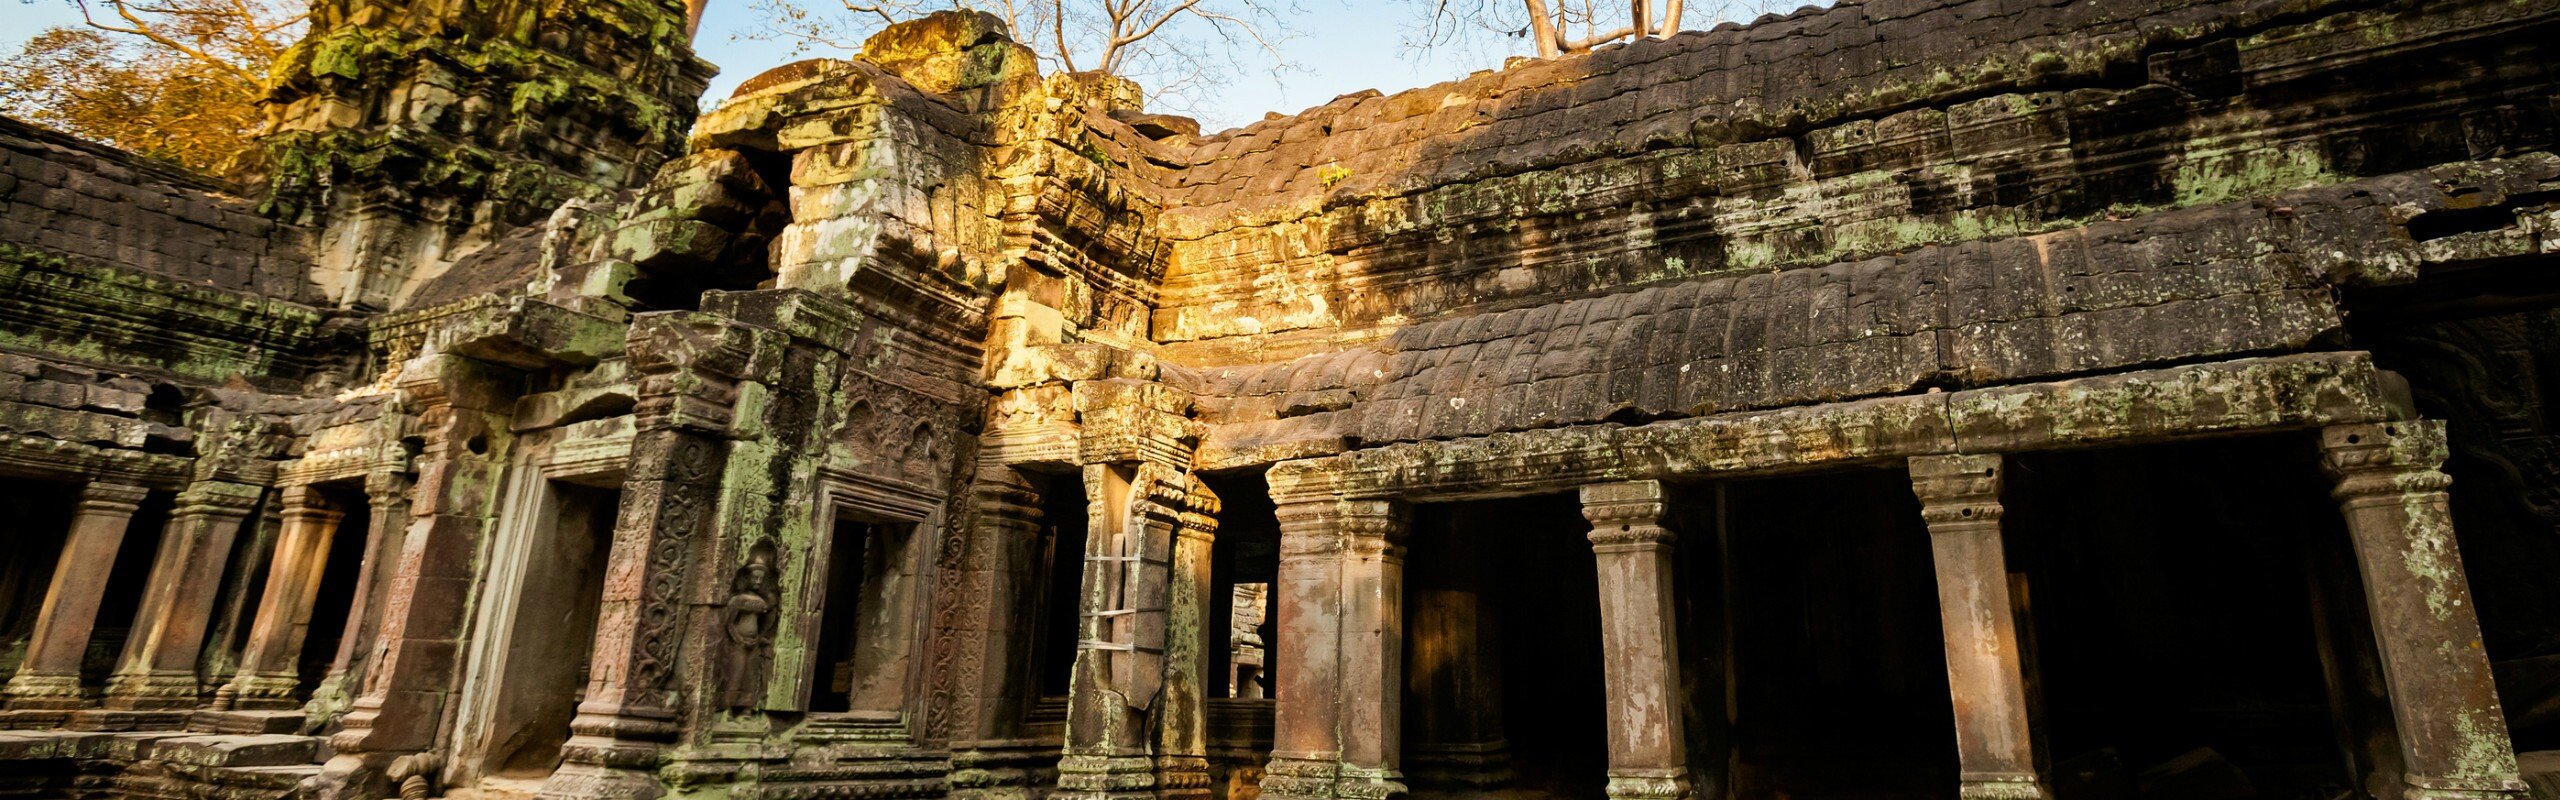 Top Things to Do and See in Angkor Wat